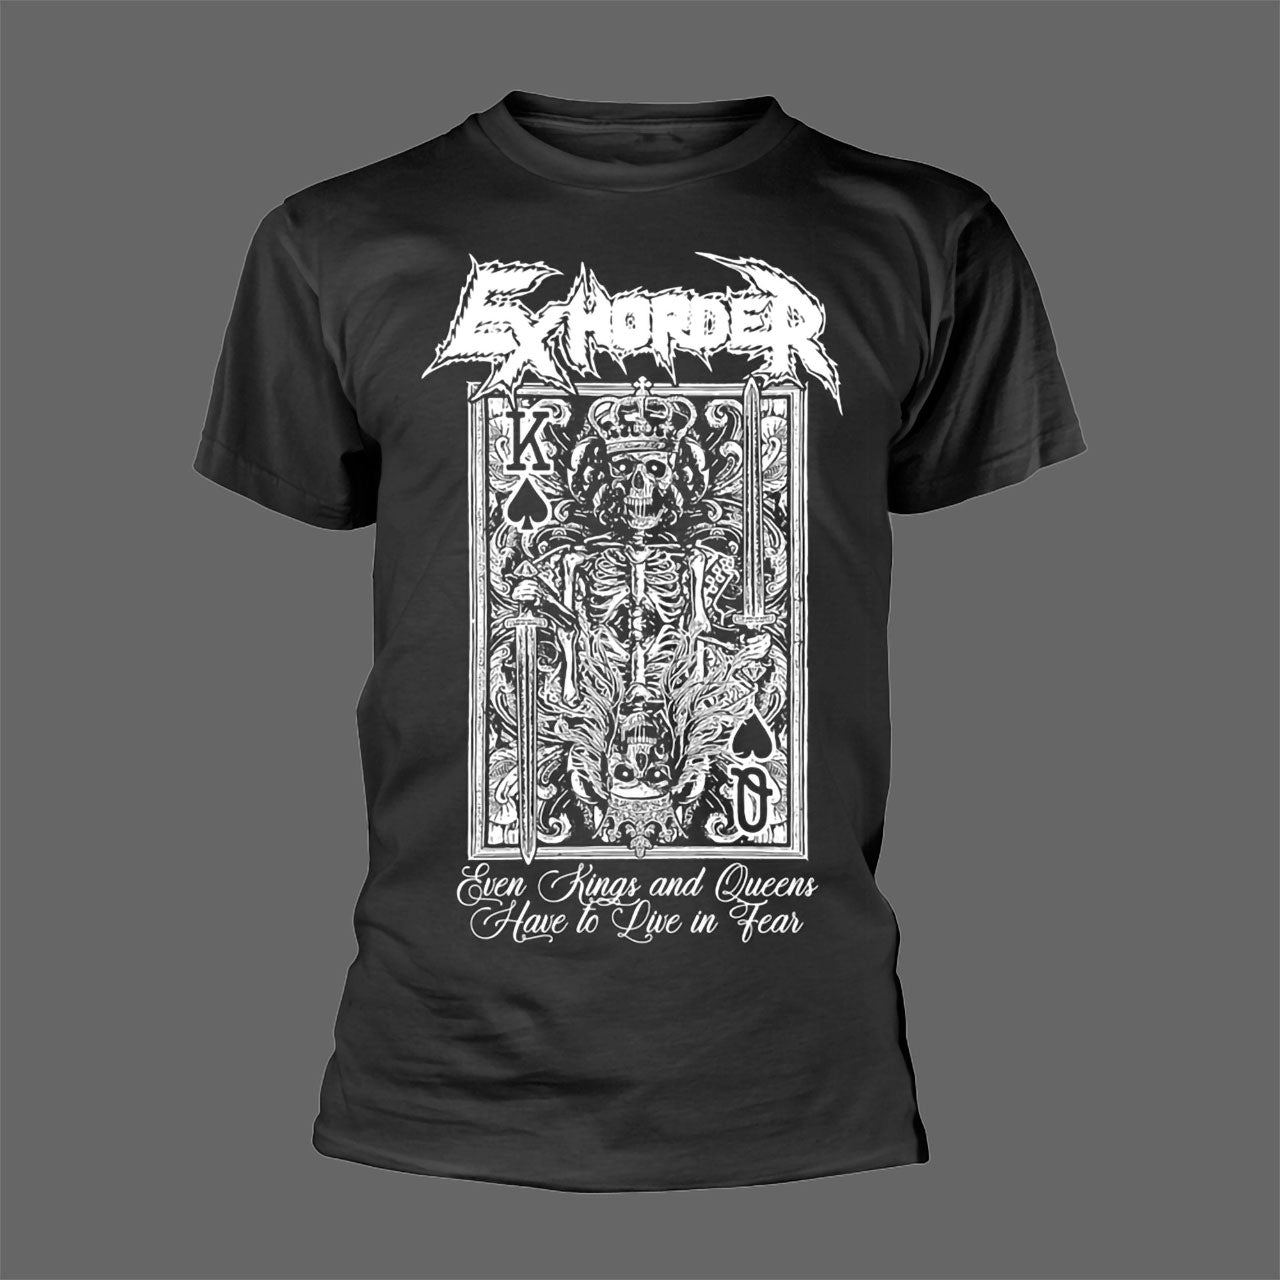 Exhorder - Even Kings and Queens Have to Live in Fear (T-Shirt - Released: 30 April 2021)